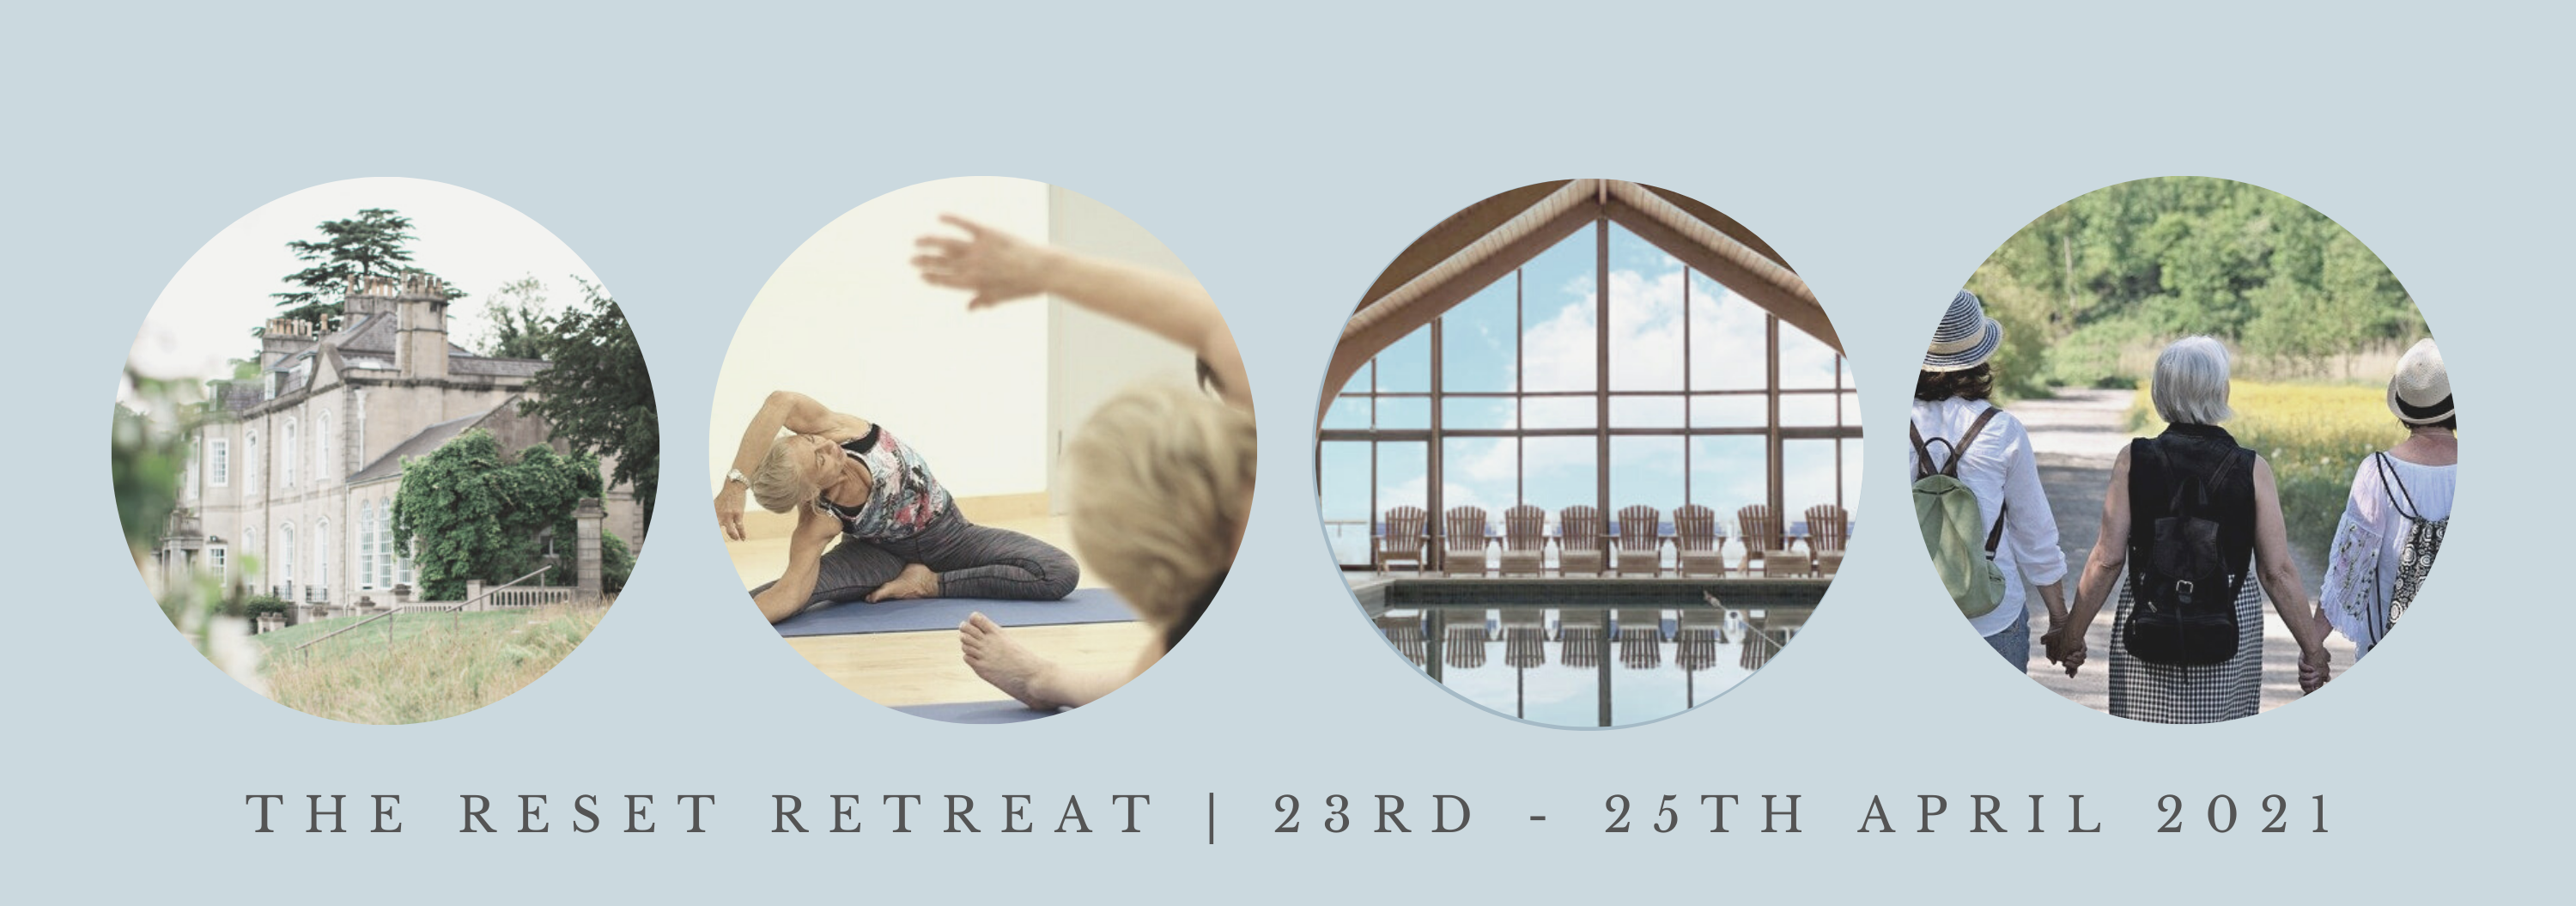 The Reset Retreat banner 2021